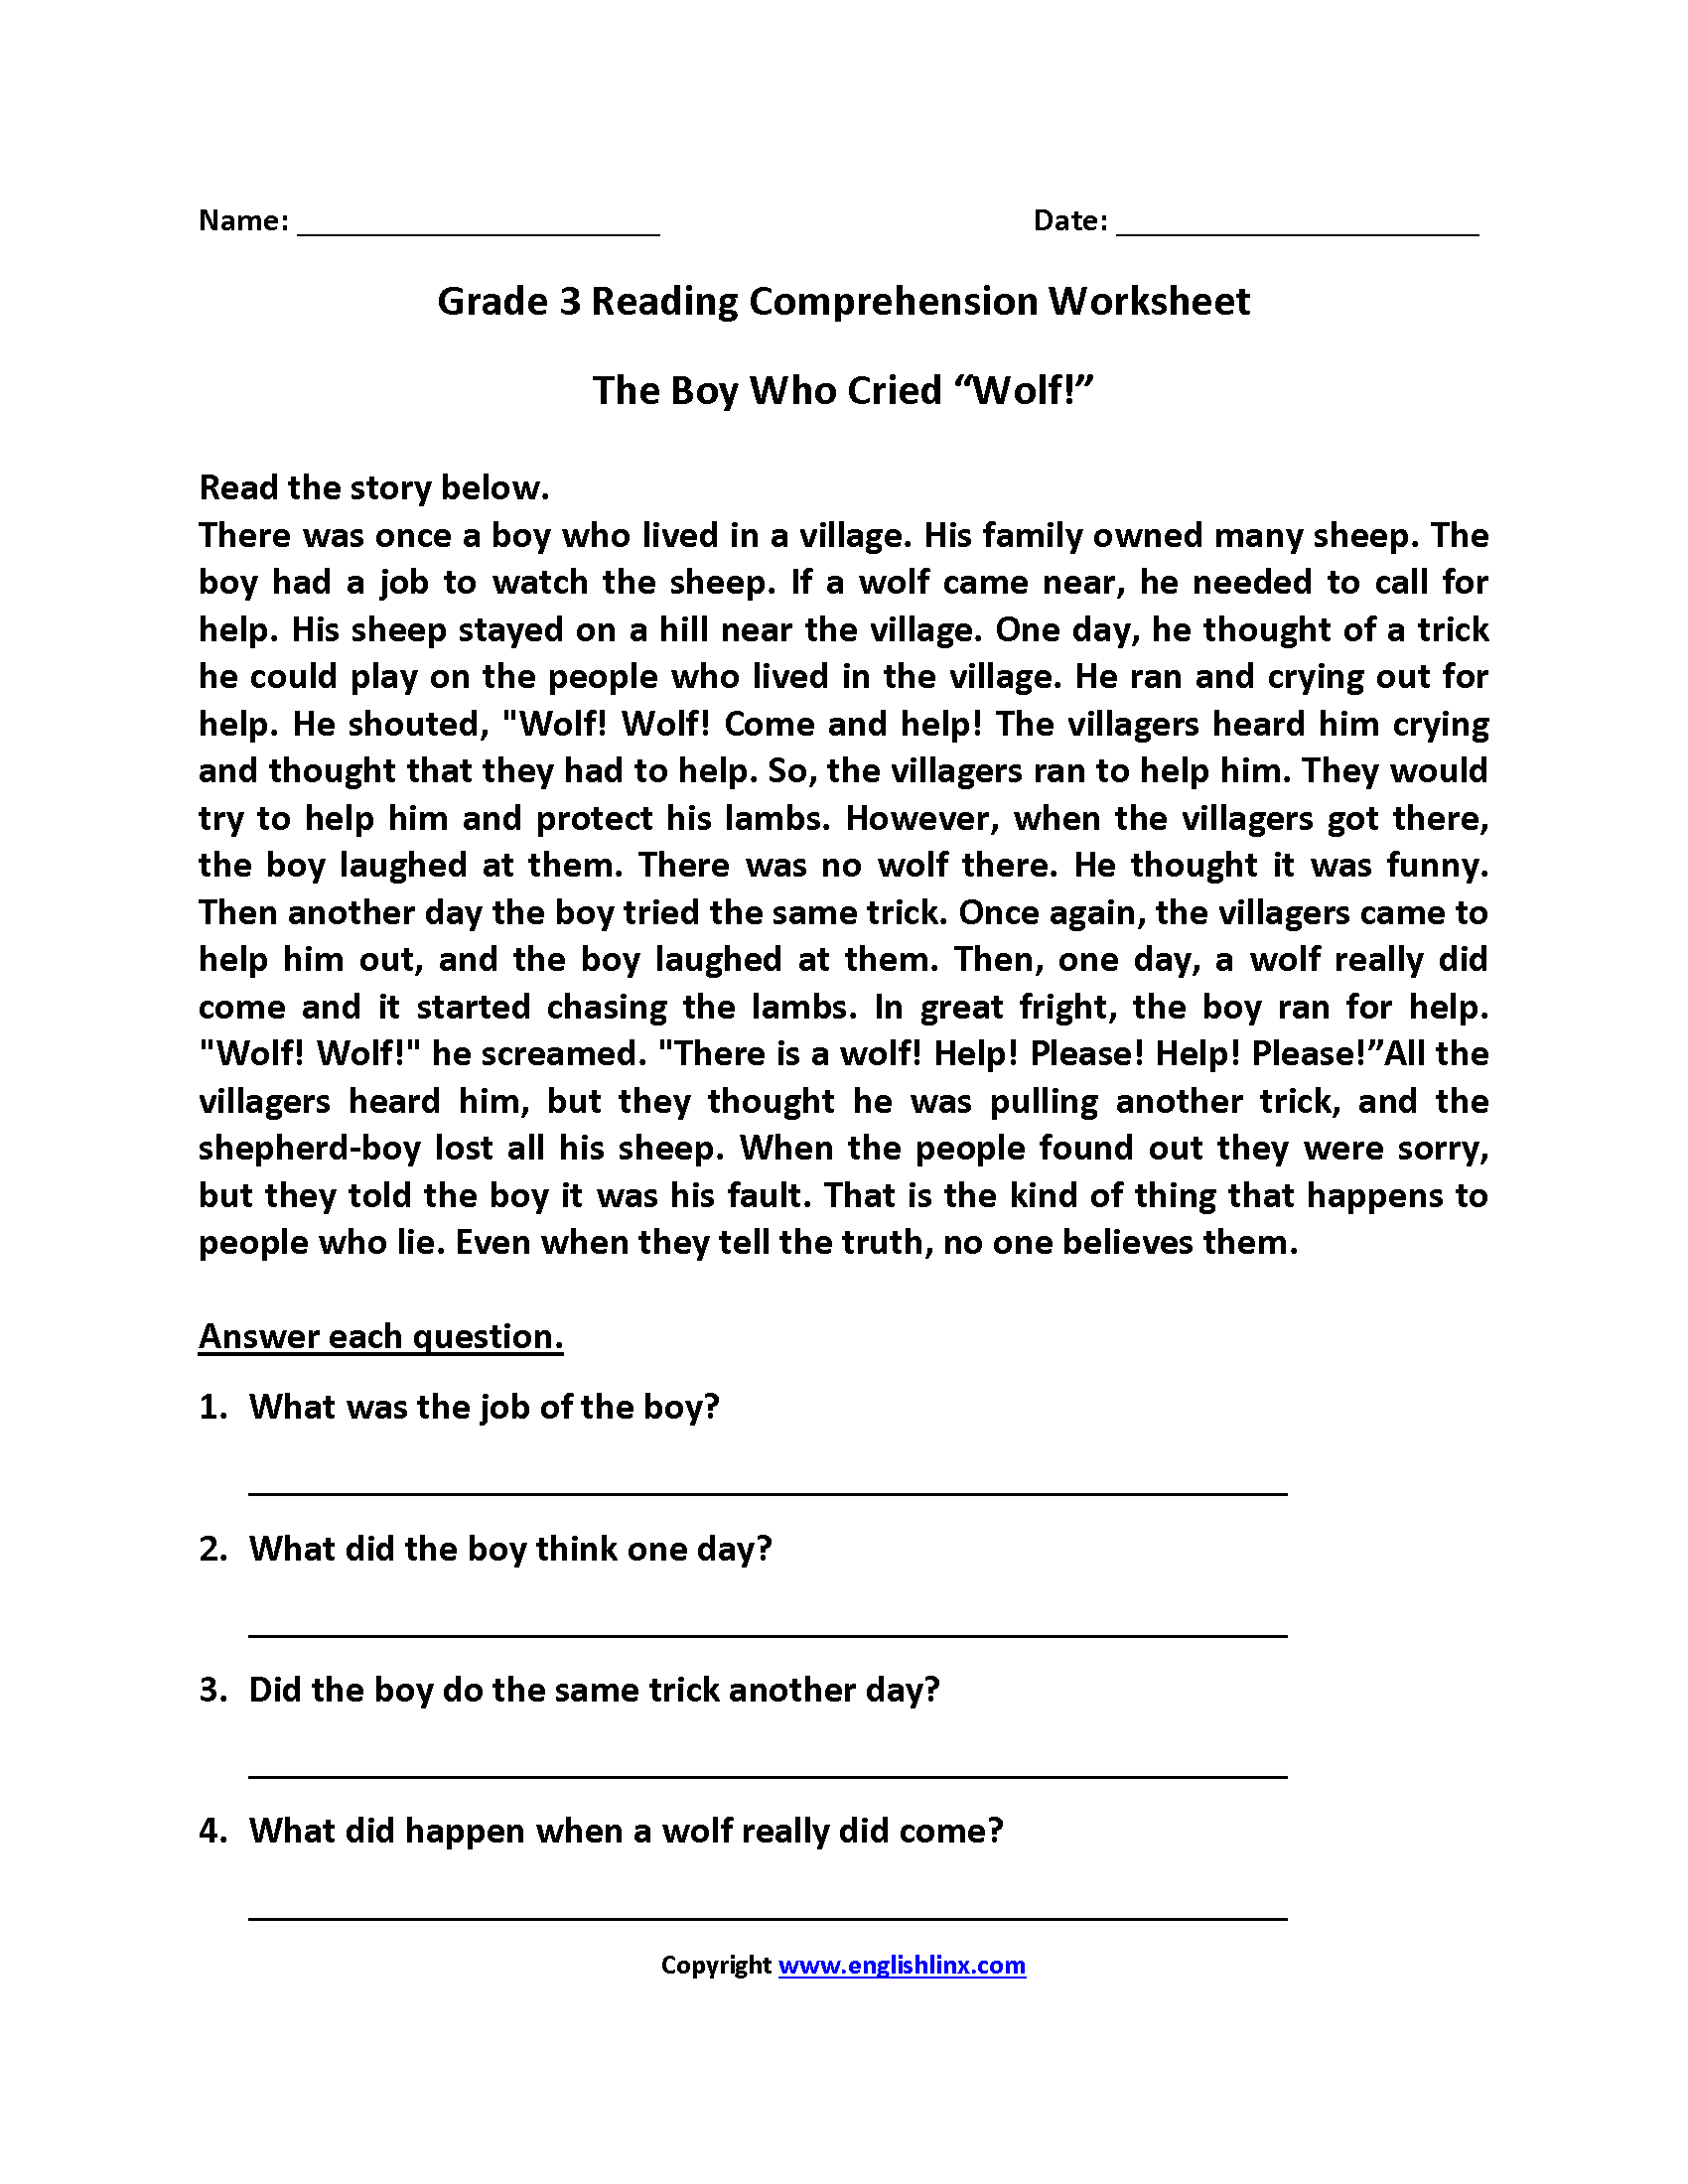 Worksheets Reading Comprehension 3rd Grade Worksheets english worksheets reading third grade worksheets